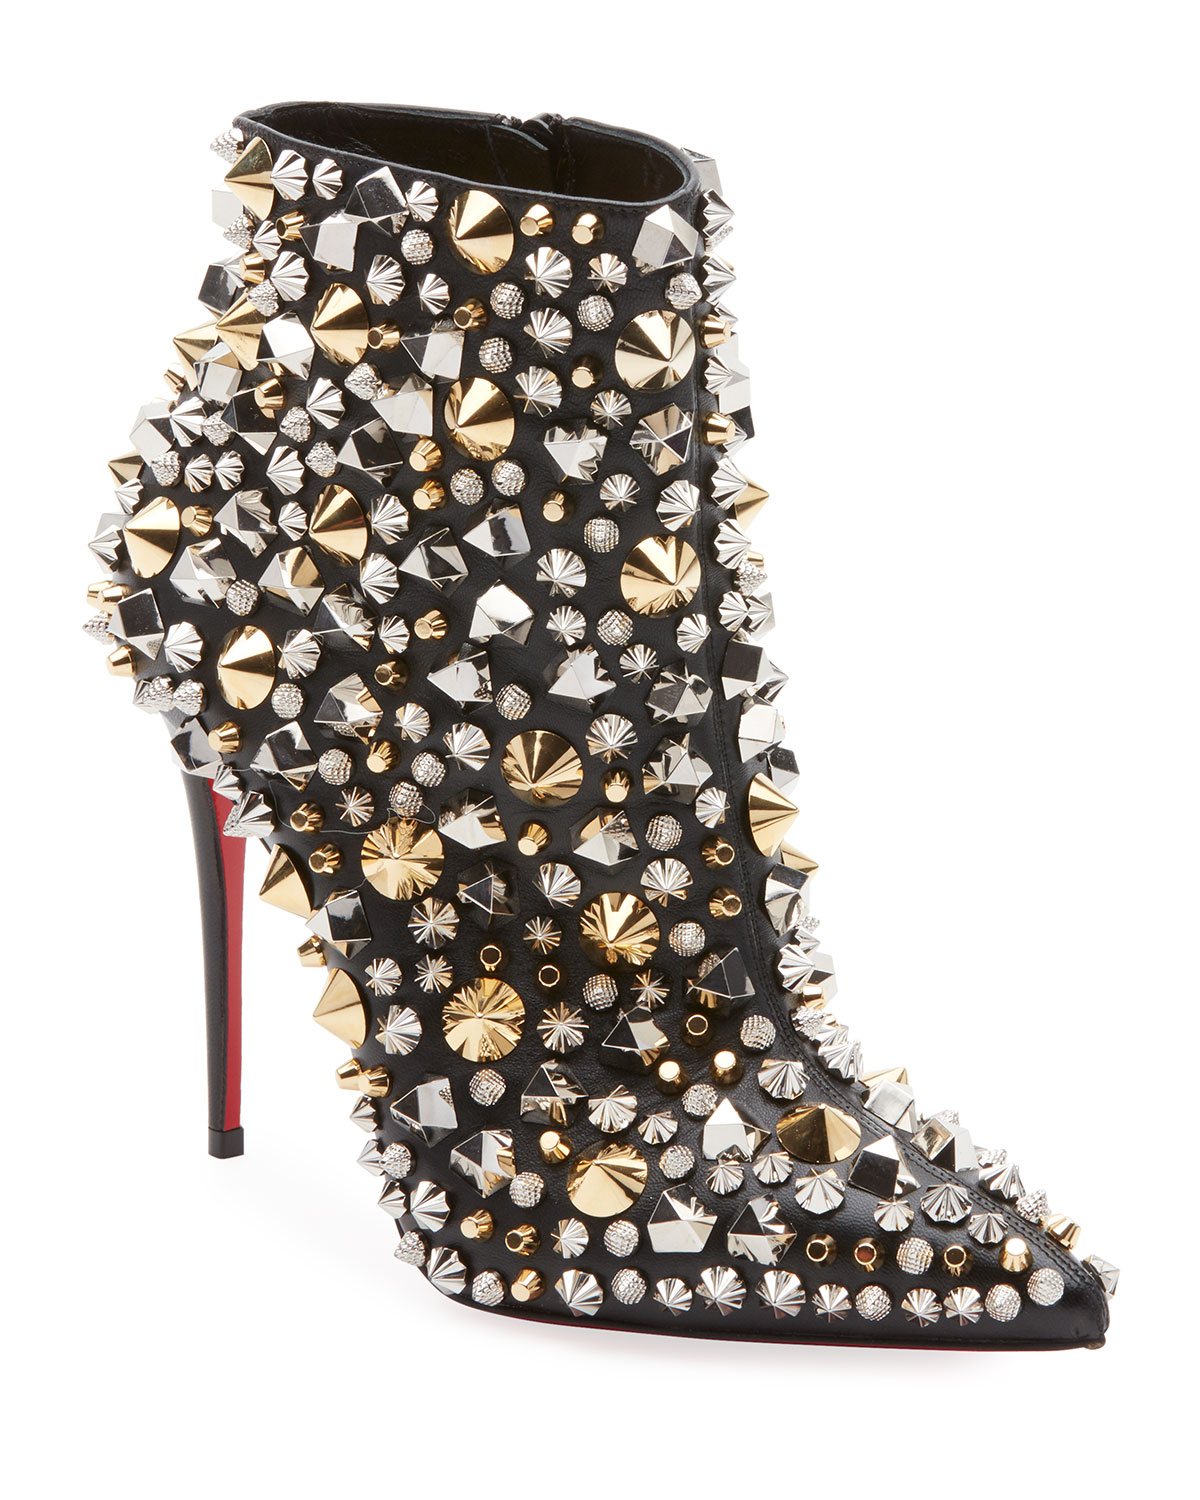 e04366e79919 Christian Louboutin So Full Kate Studded Napa Red Sole Booties ...